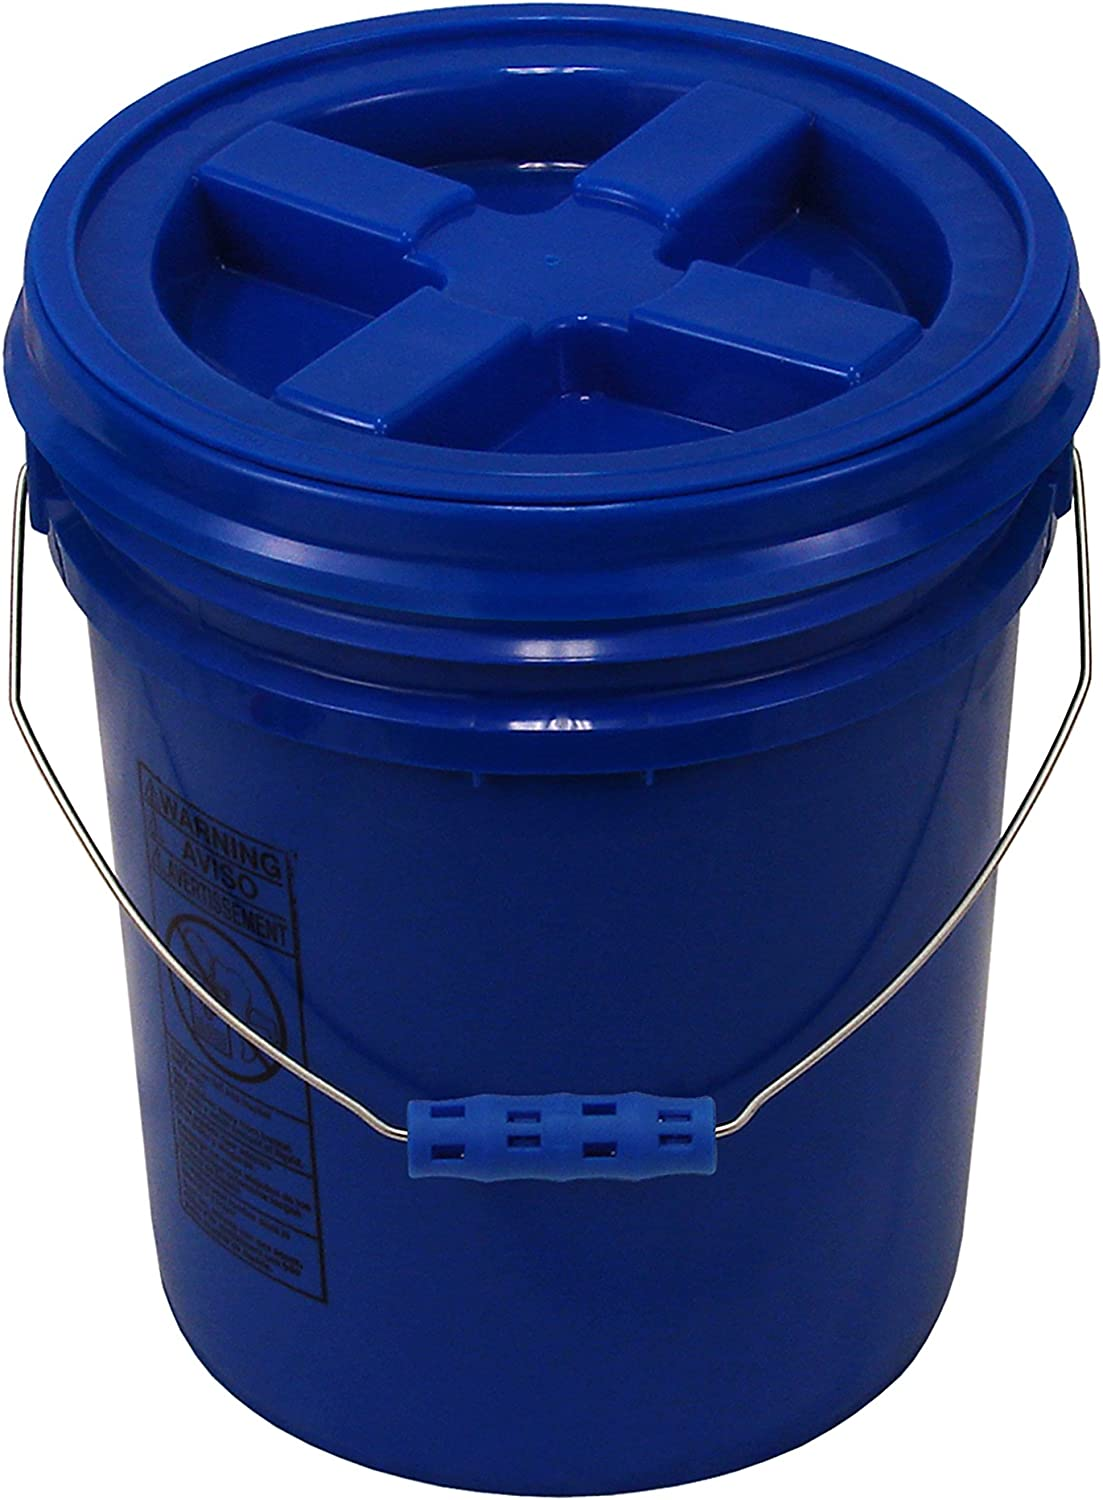 Blue 5 Gallon Bucket with Seal and Oversized Gamma Lid Reservation Phoenix Mall